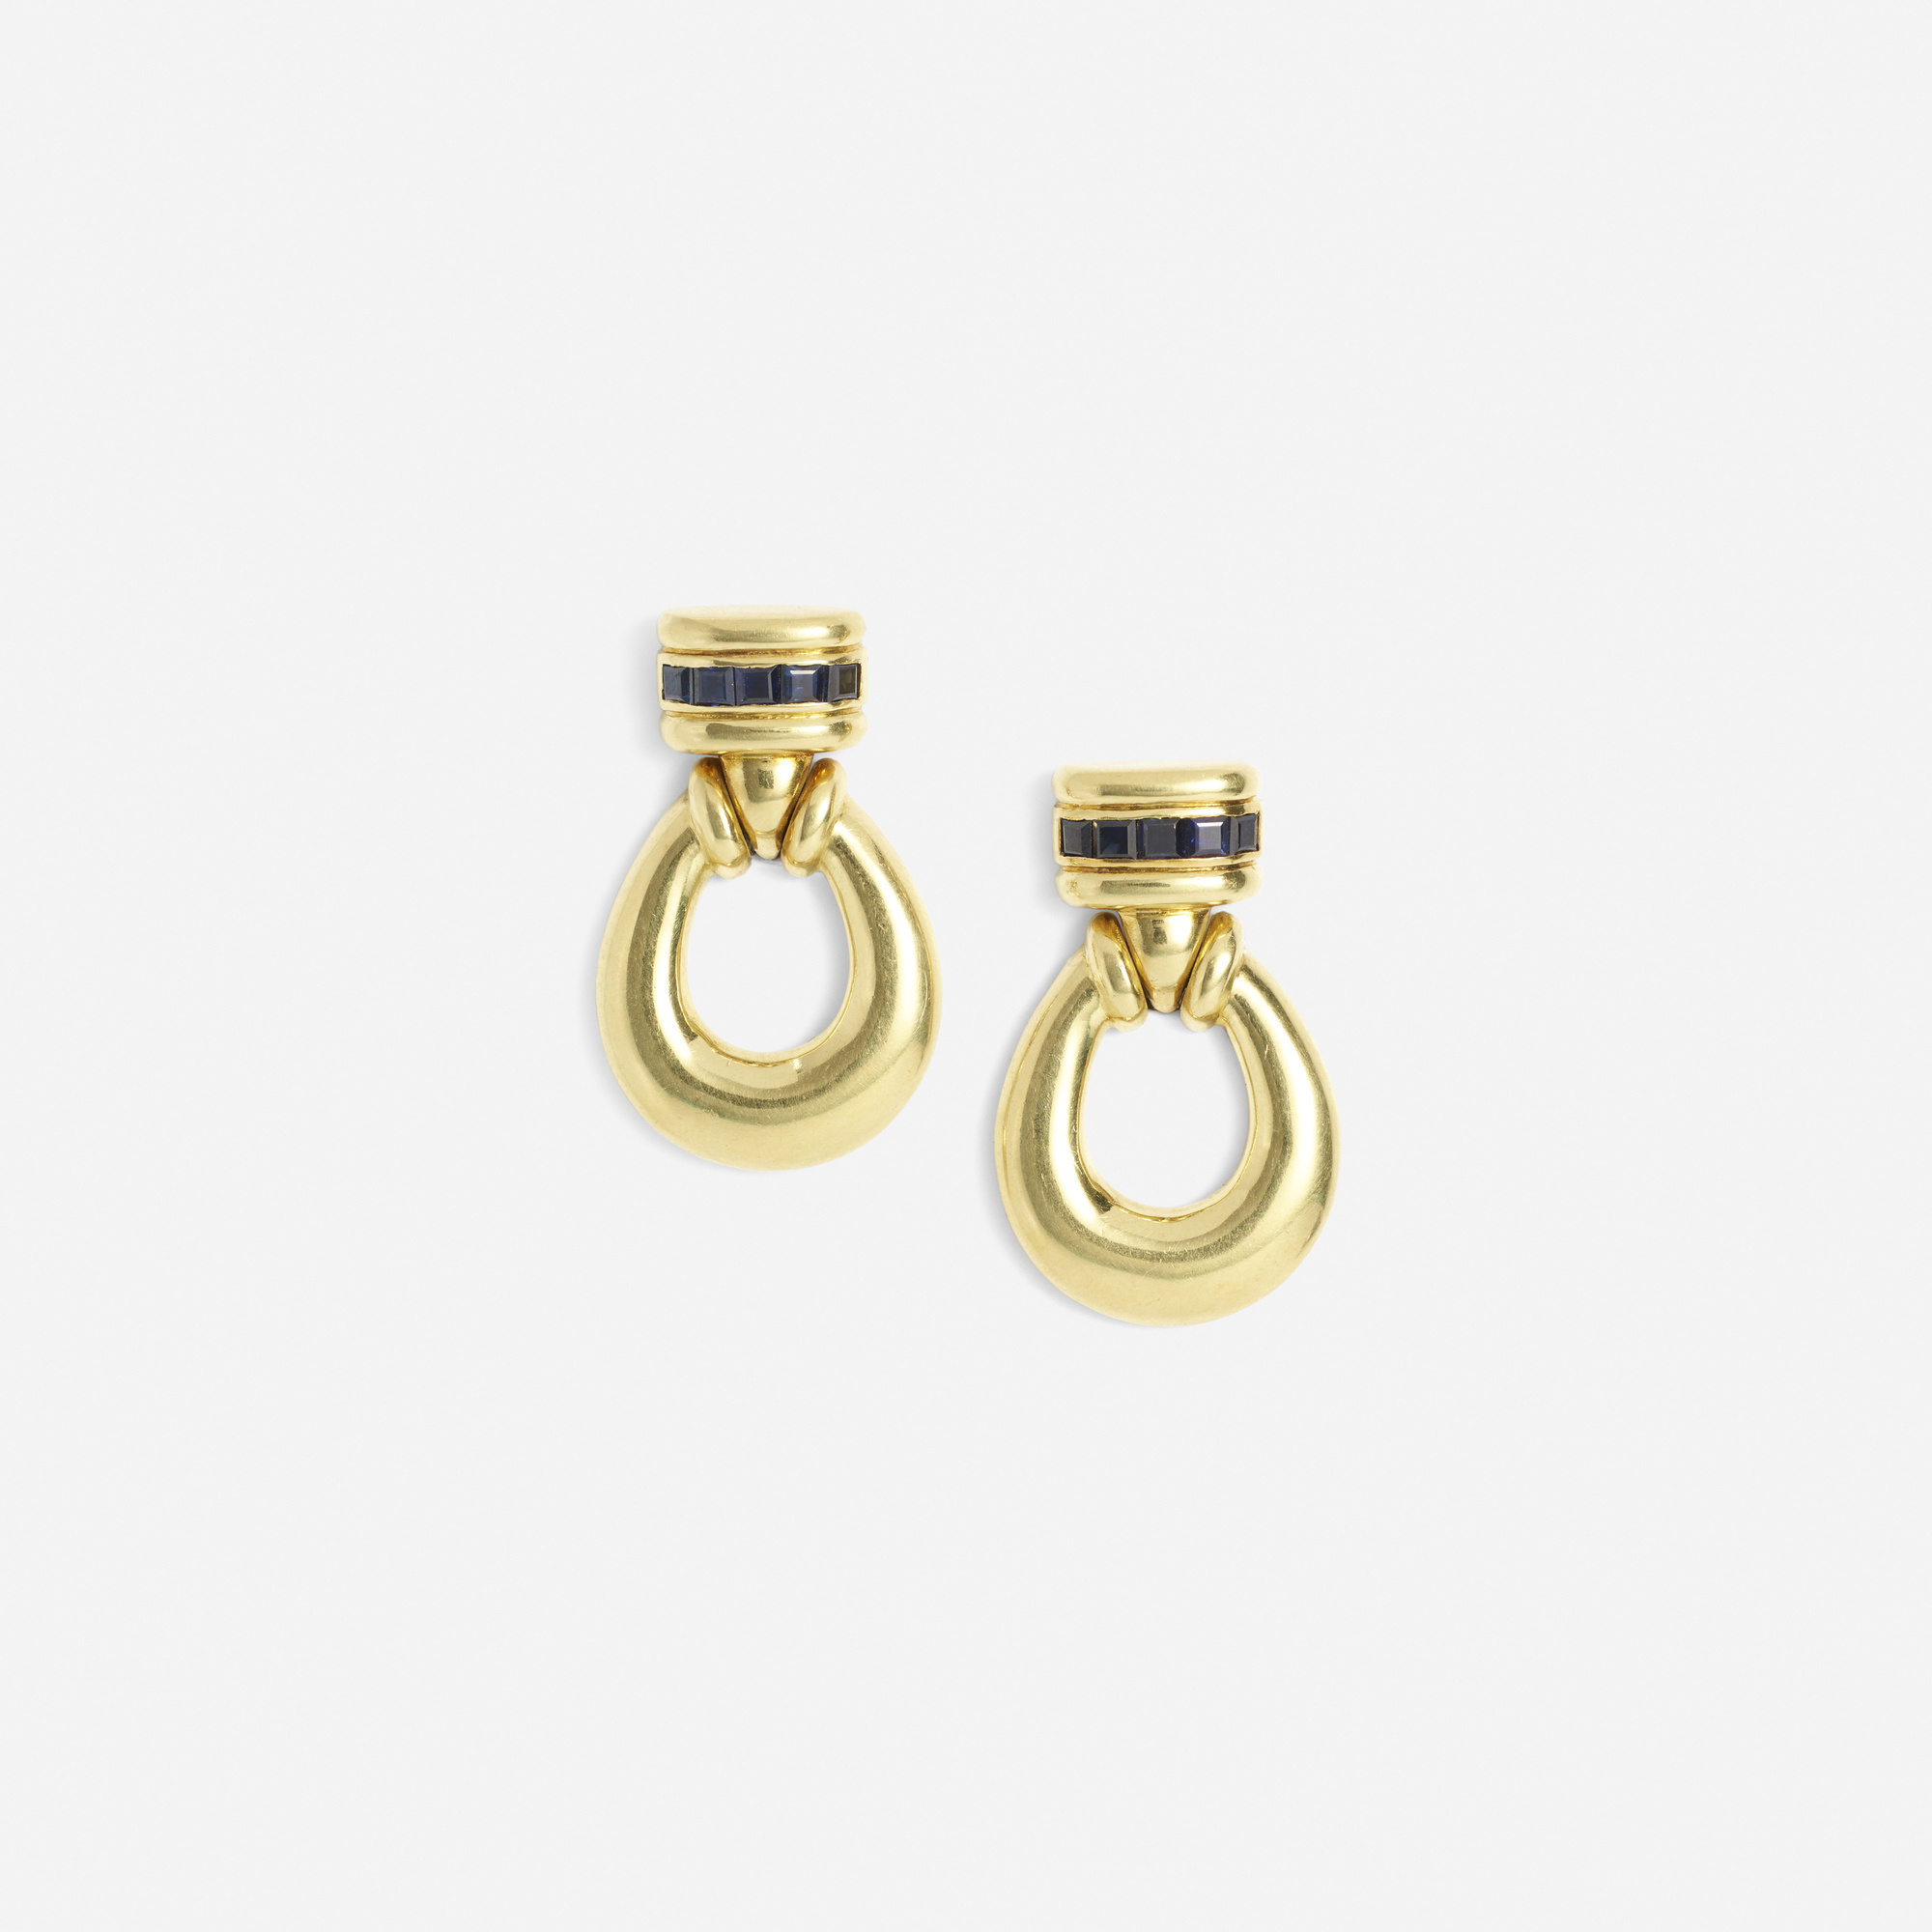 296:  / A pair of gold and sapphire earrings (1 of 1)